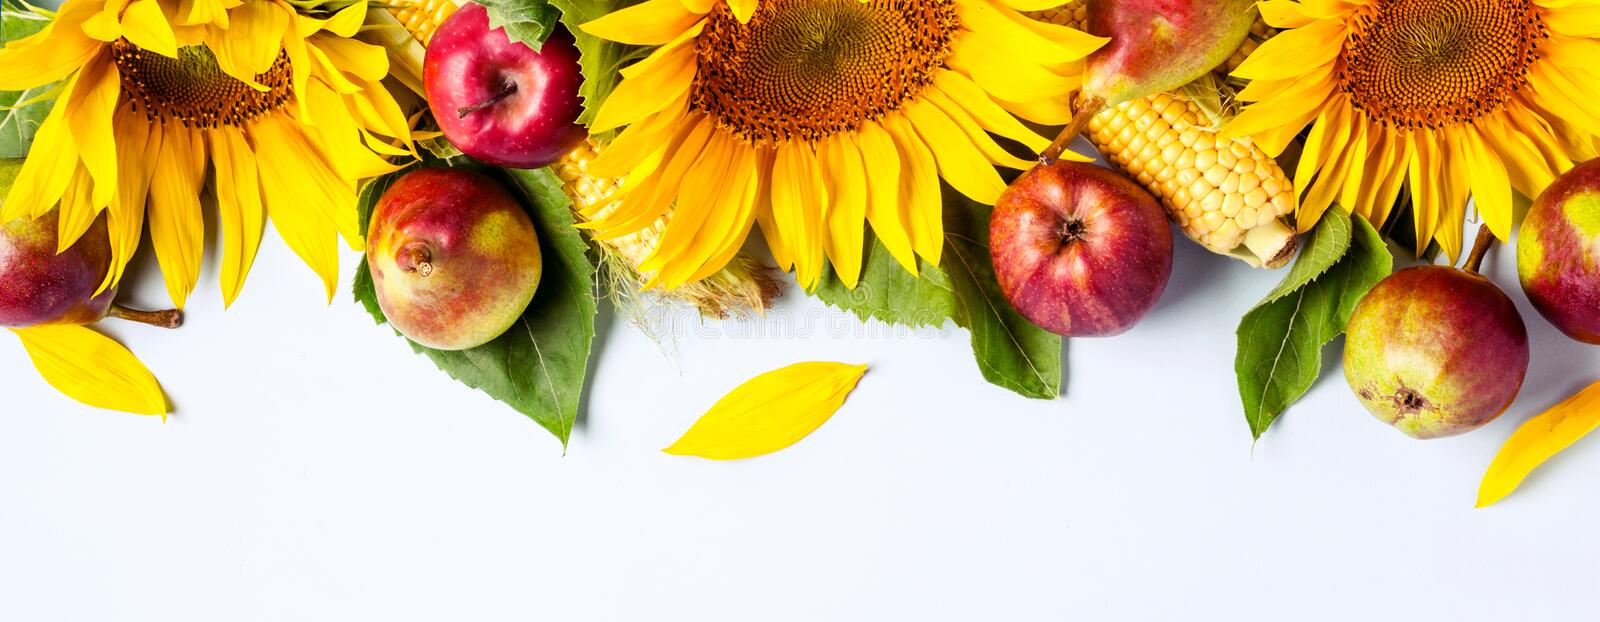 Autumn background. Border of sunflower, corn and pears. Harvest holiday concept. Long banner format royalty free stock images